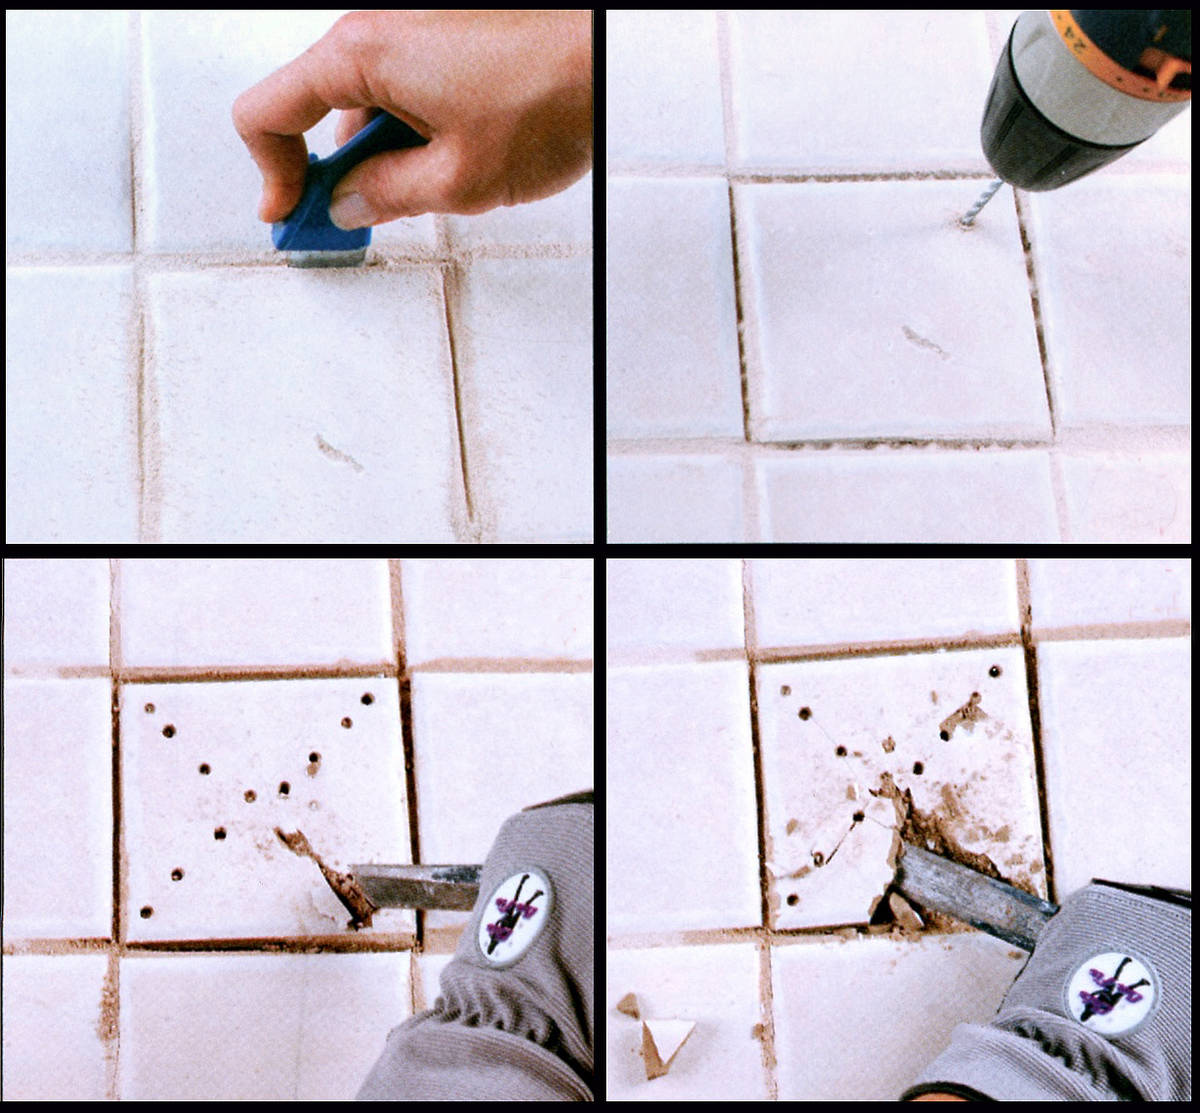 (Norma Vally) To break out old tiles, first remove the grout. Then, make small divots in the sh ...